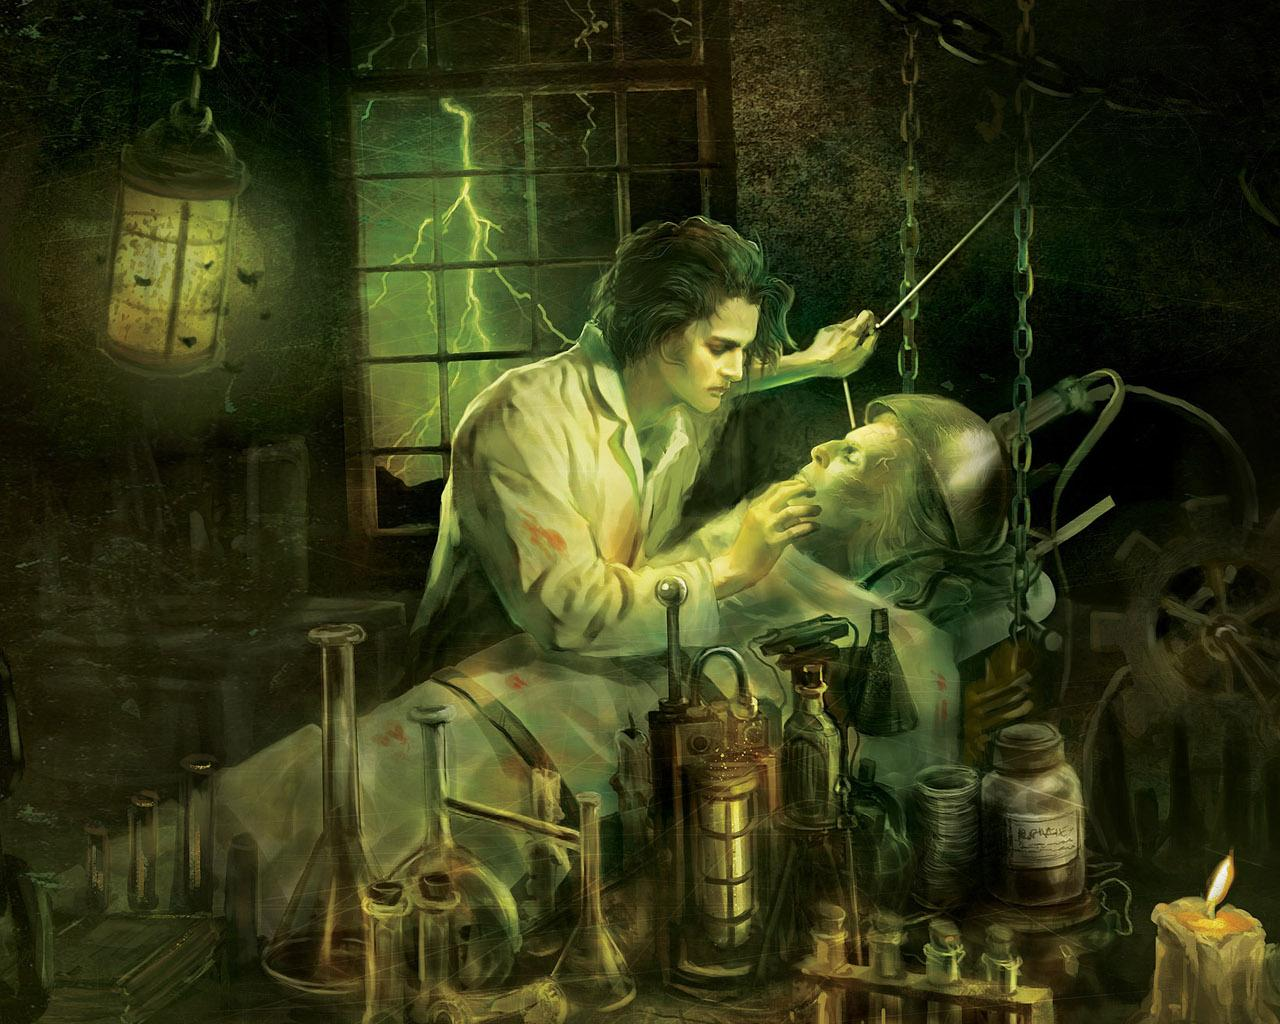 an analysis of the two monsters and their superiority to mankind in grendel and frankenstein Hope this works grendel & frankenstein an analysis of the two monsters and their superiority to mankind frankenstein must have felt during their grendel, a.